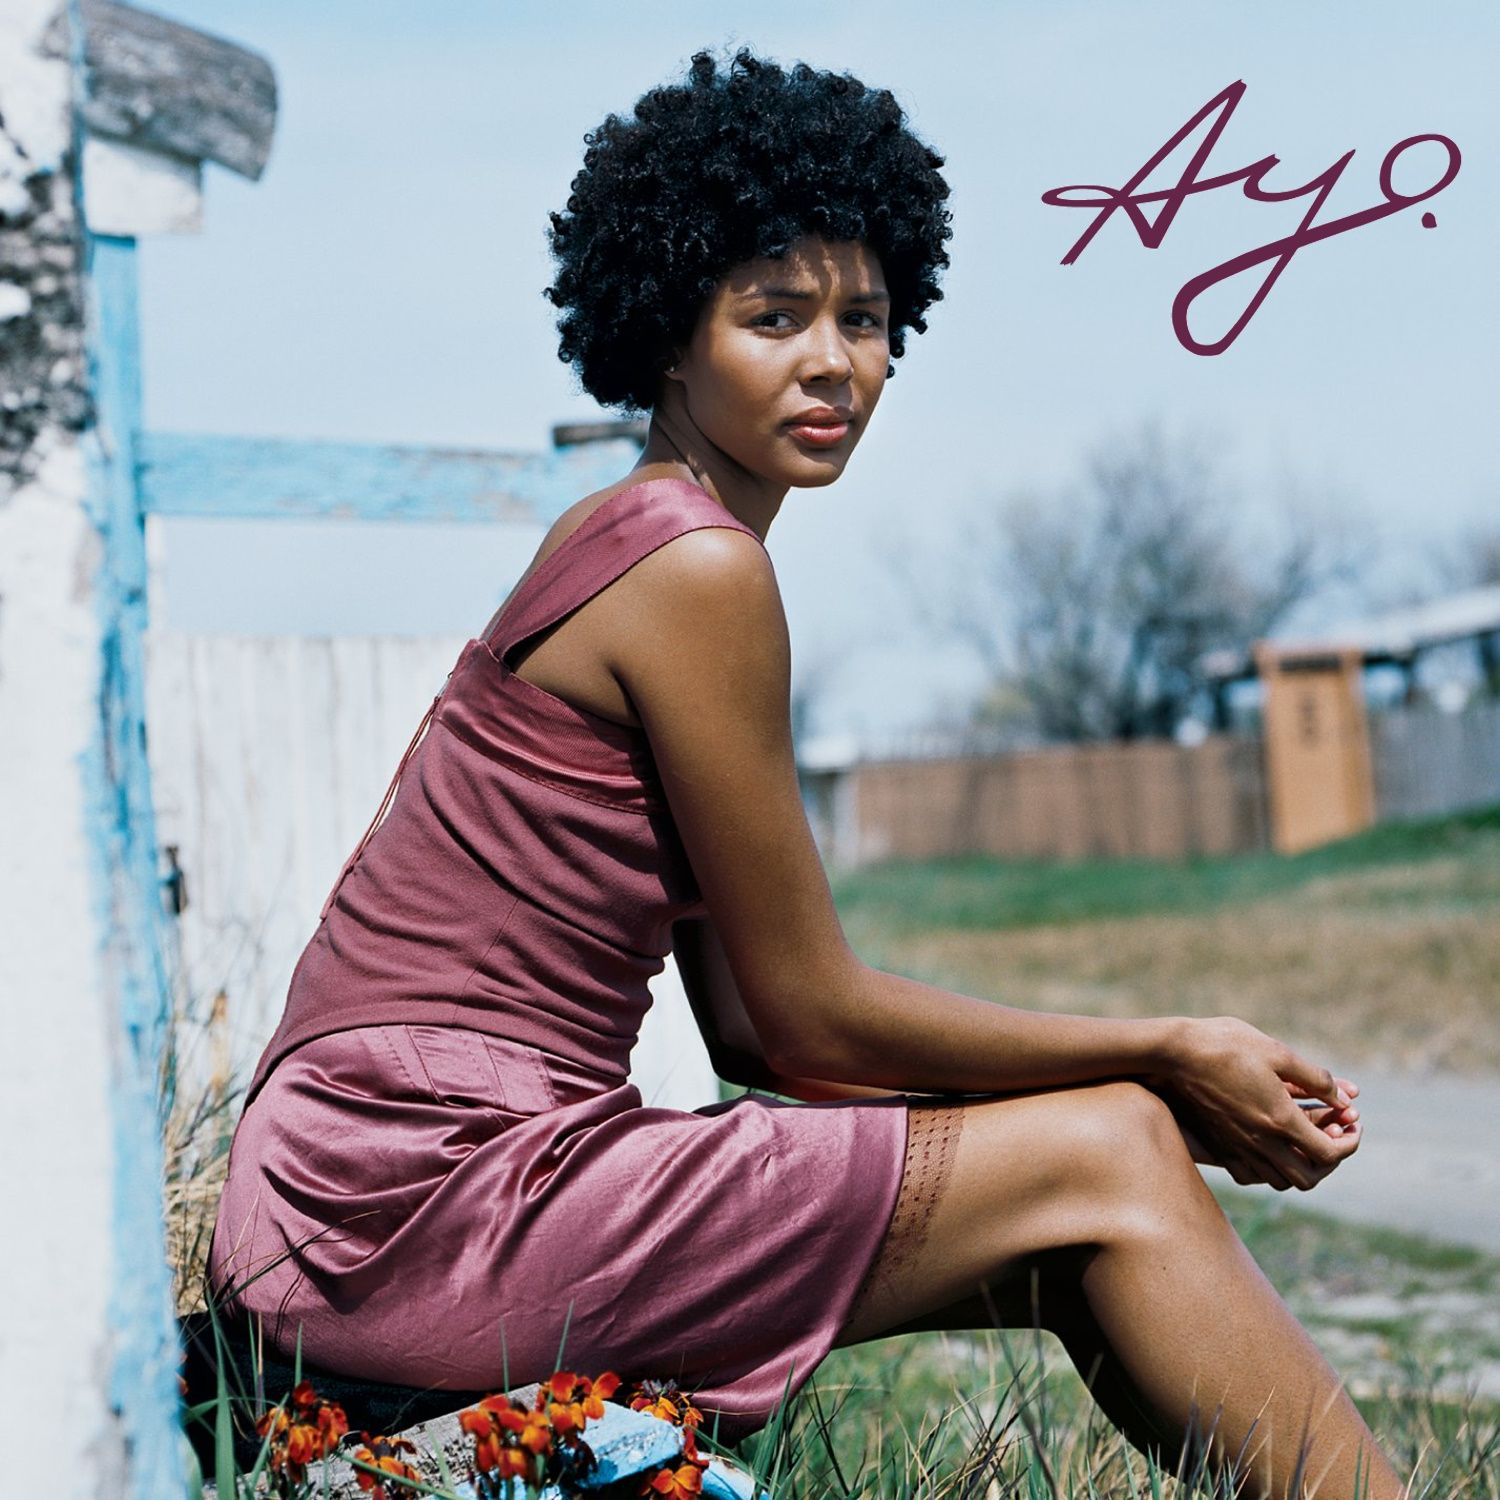 Ayo - Joyful album cover